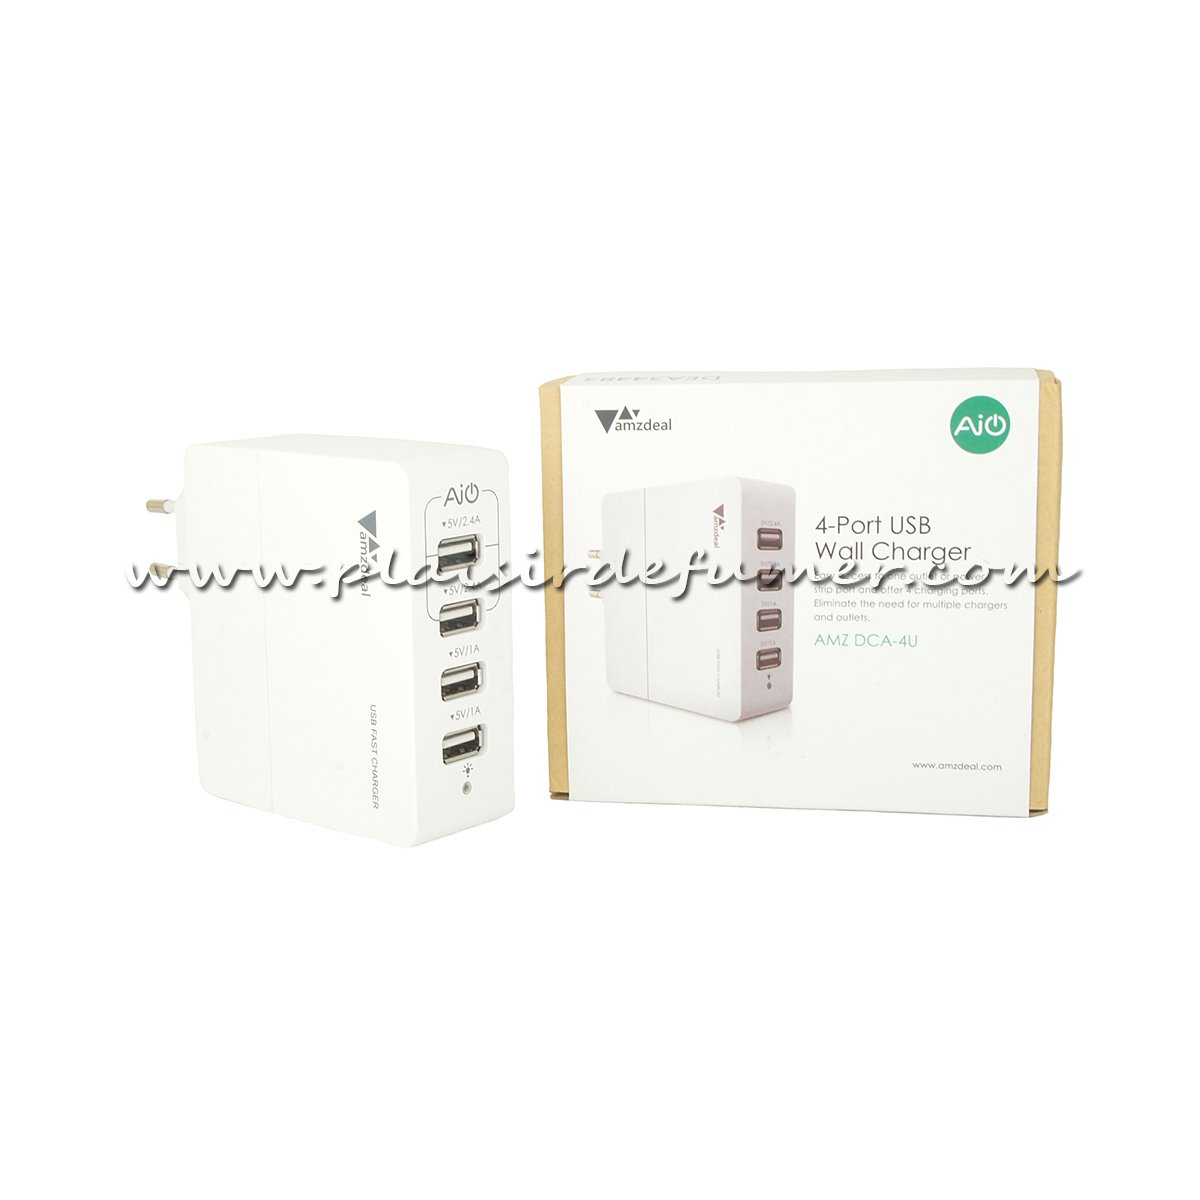 Chargeur Mural Usb 4 Ports